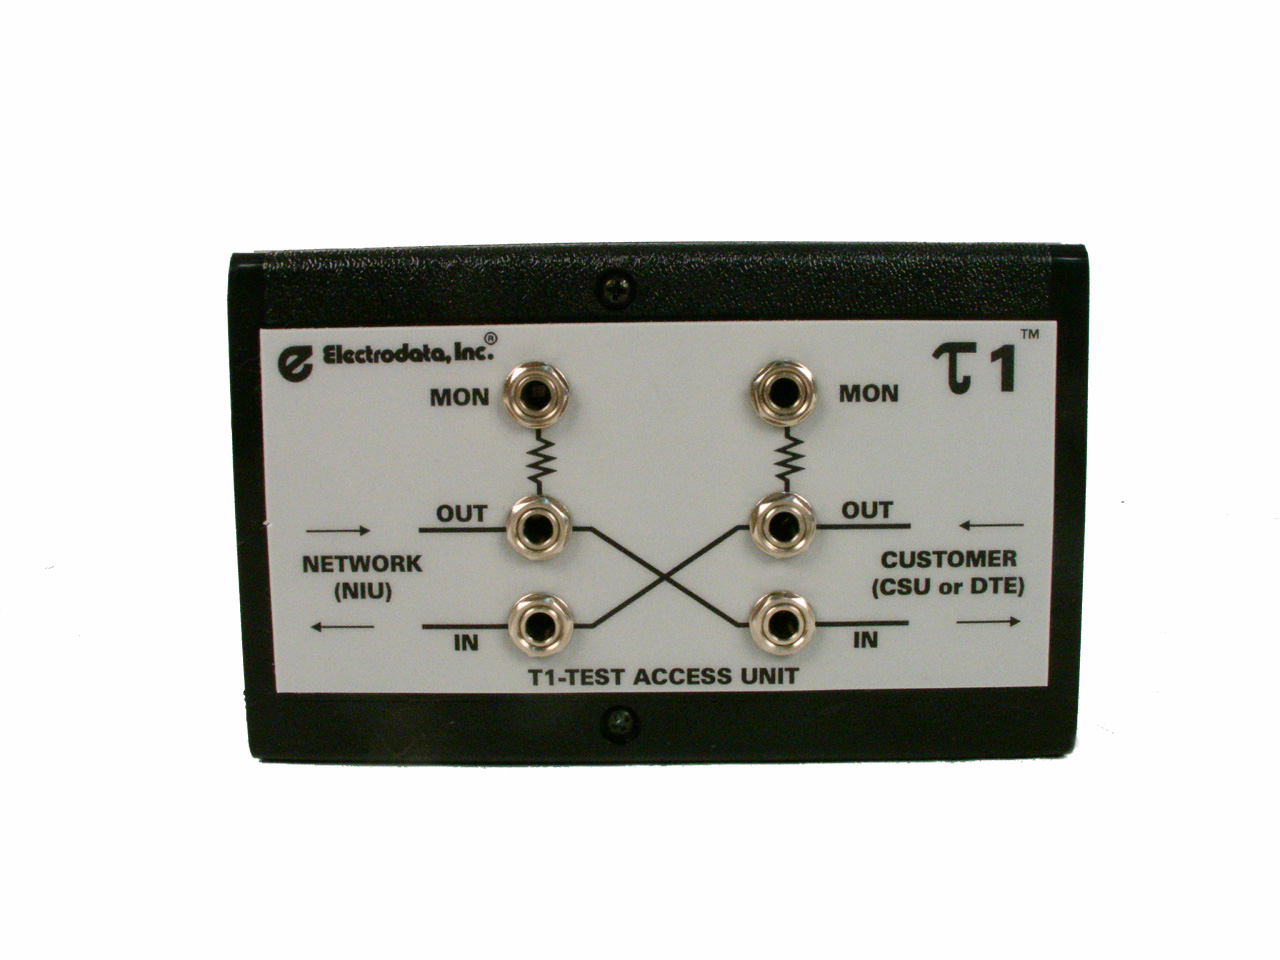 Electrodata TAU 1 for sale